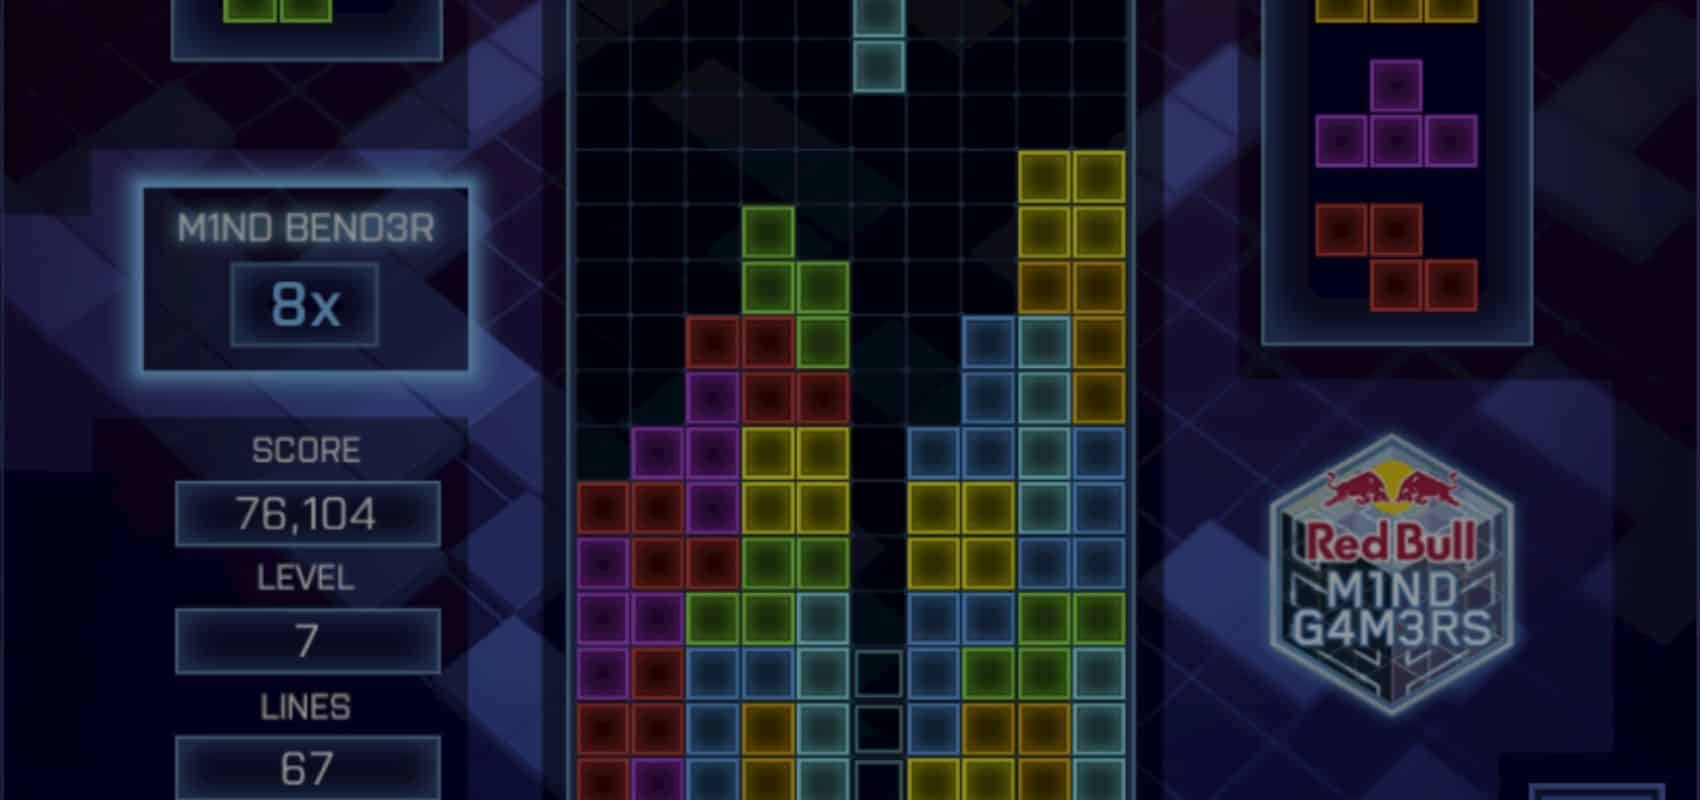 Red Bull Mind Gamers New 'Mind Challenge' Site Launches With All New Tetris Game